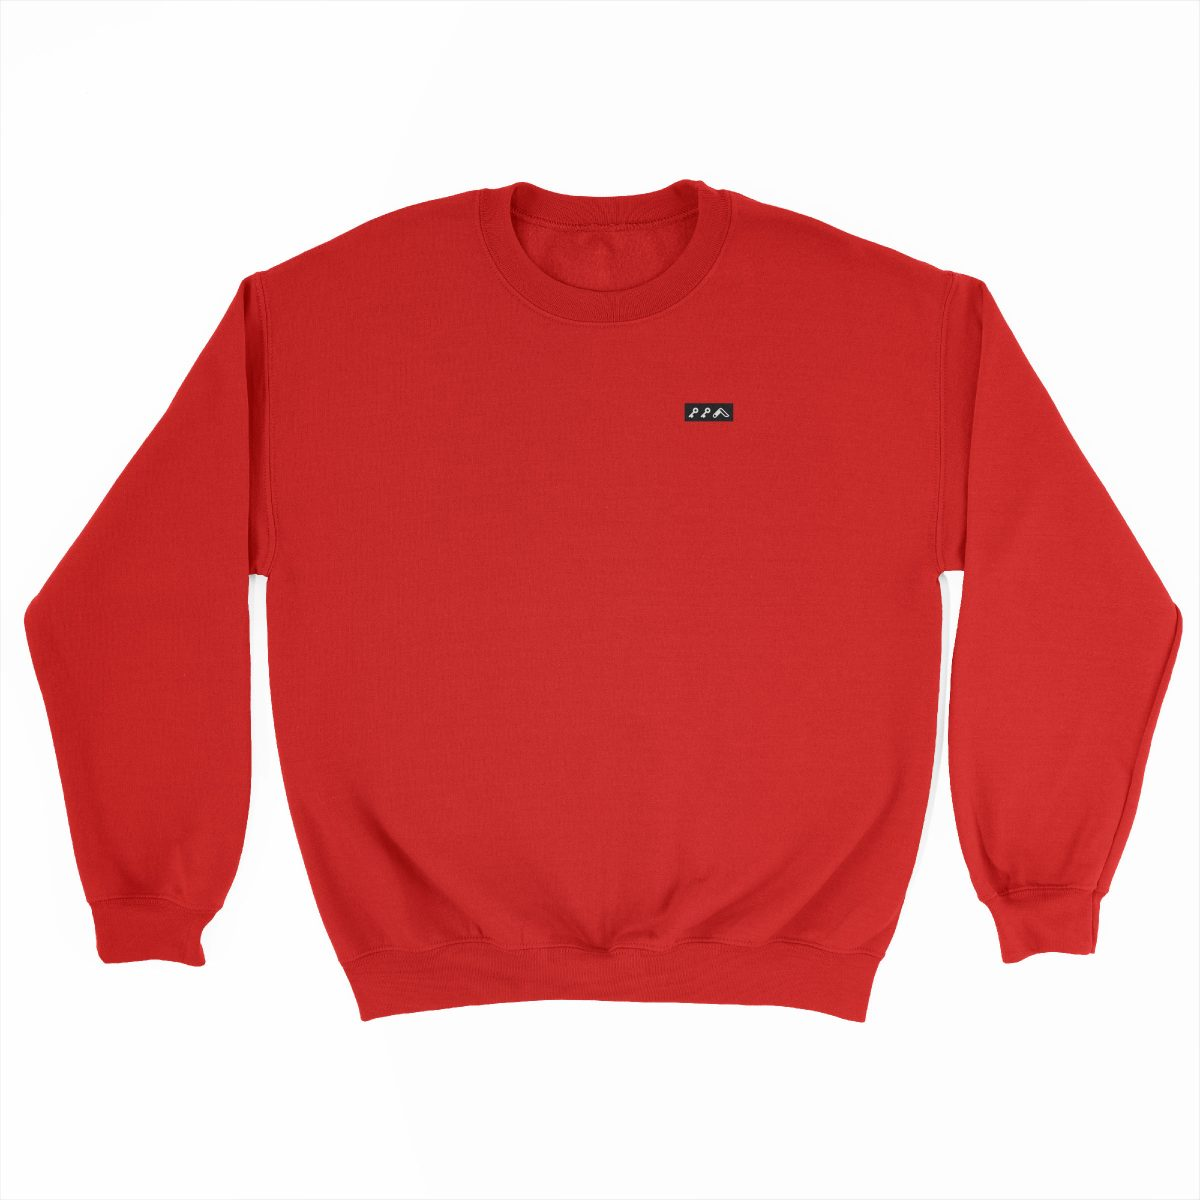 KIKICUTT black icon on a red really soft sweatshirt at kikicutt.com